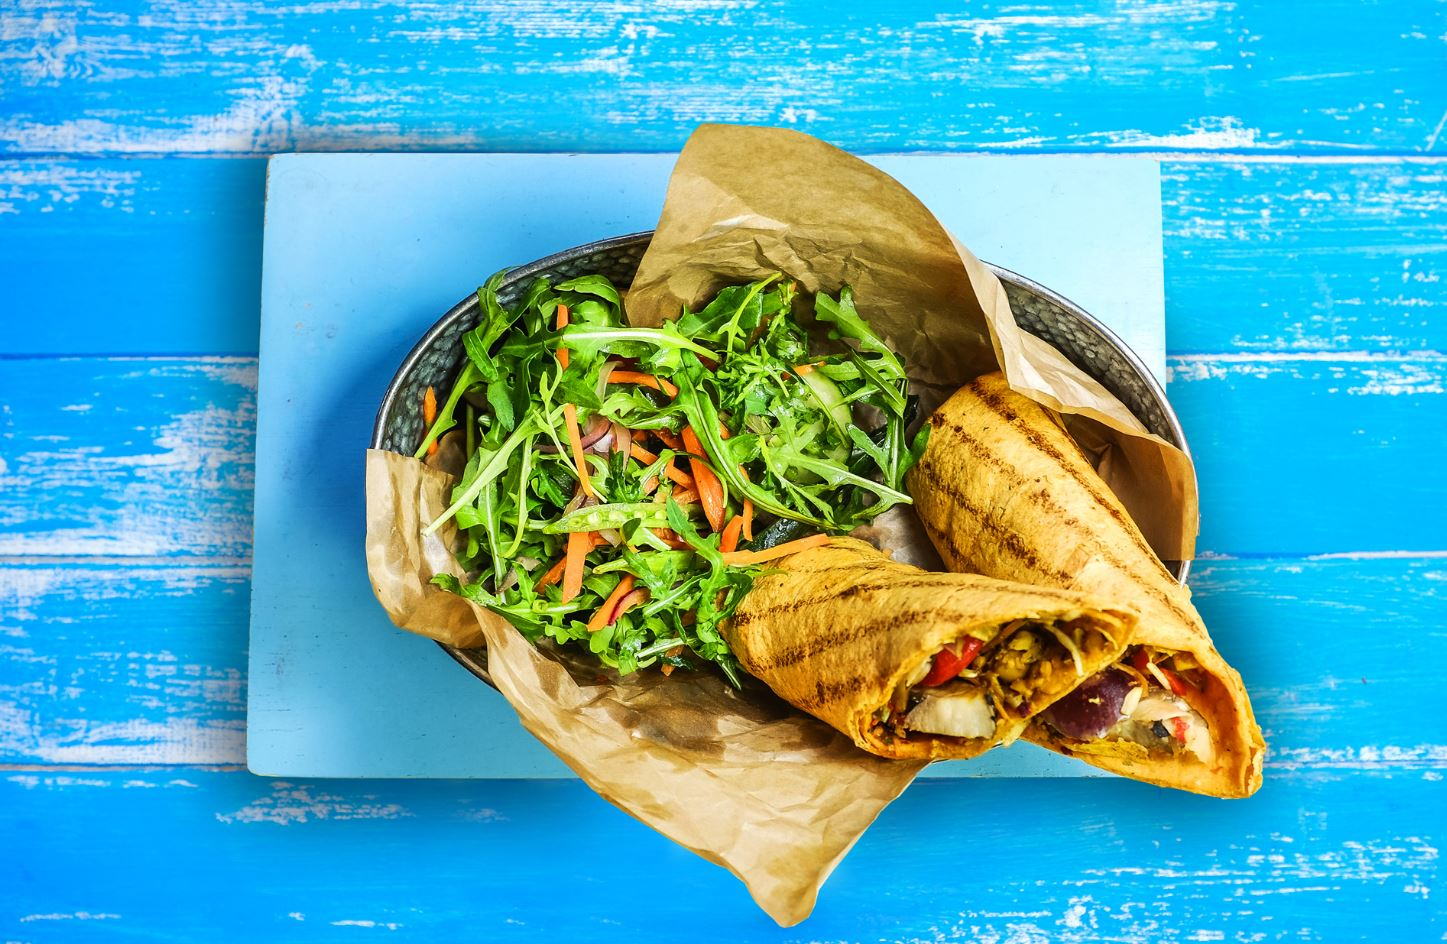 TURTLE BAY WELCOMES VEGANUARY WITH BRAND-NEW VEGAN & VEGETARIAN MENU